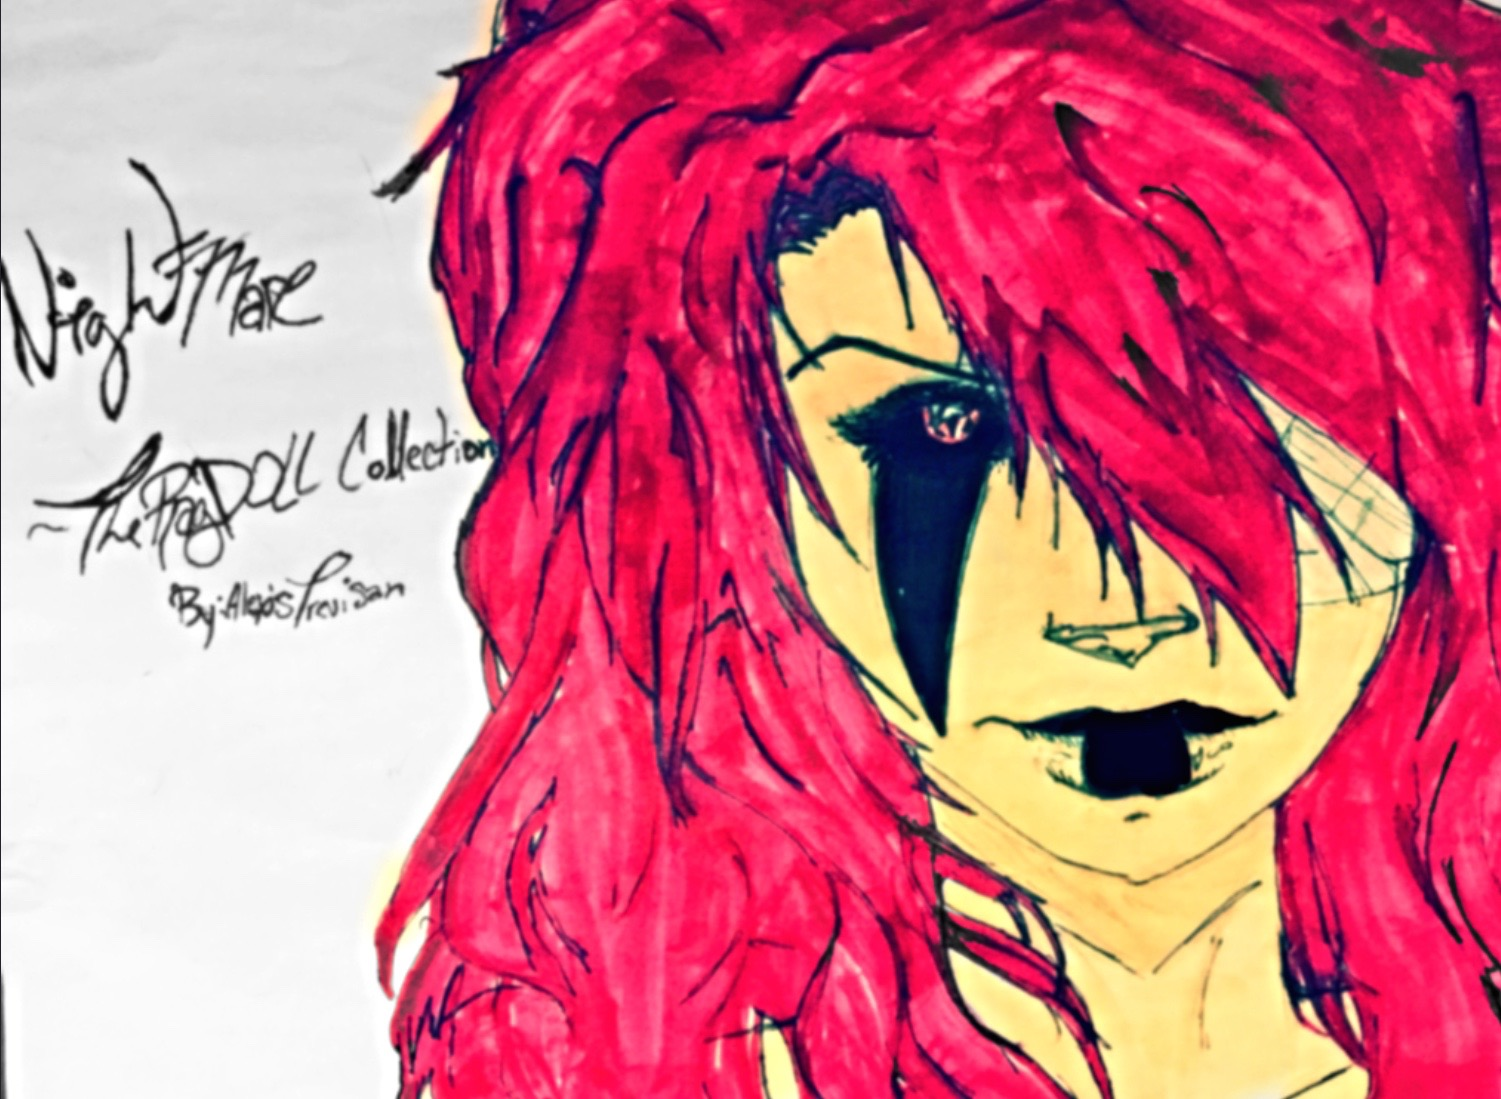 Nightmare~ TheRagDOLLCollection